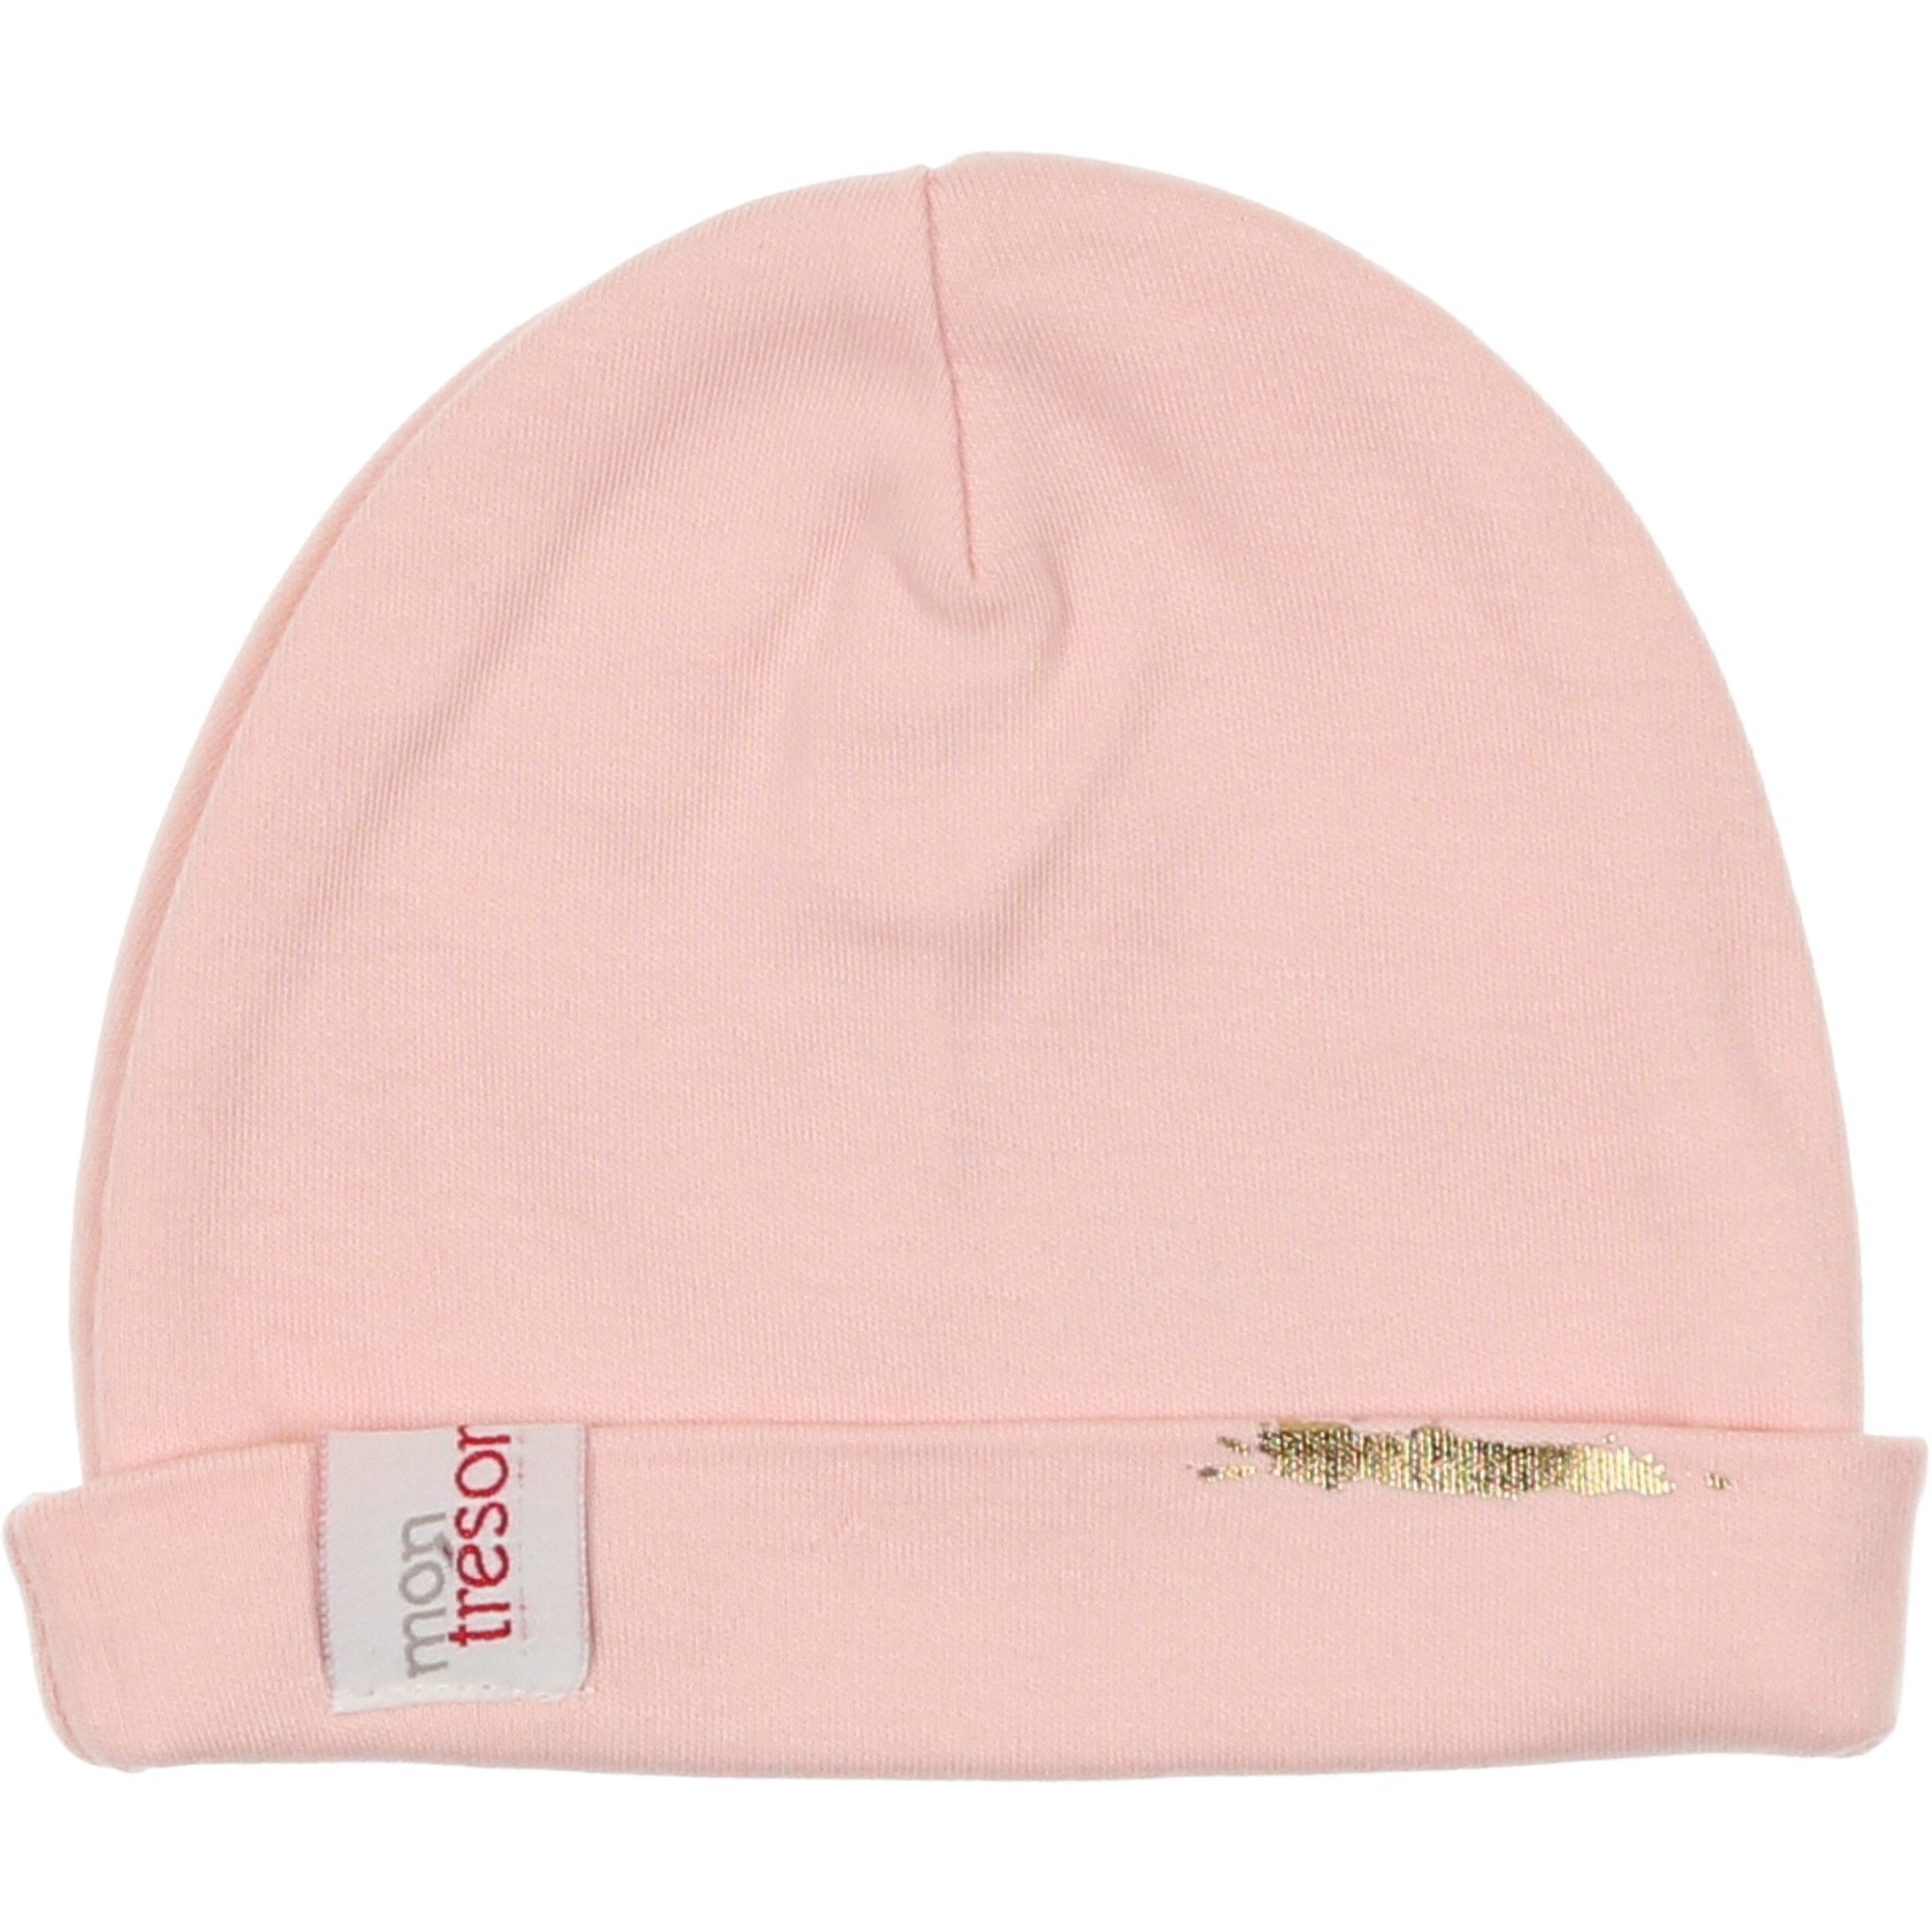 Mon Tresor Bebe Paint by Colors Pink Hat